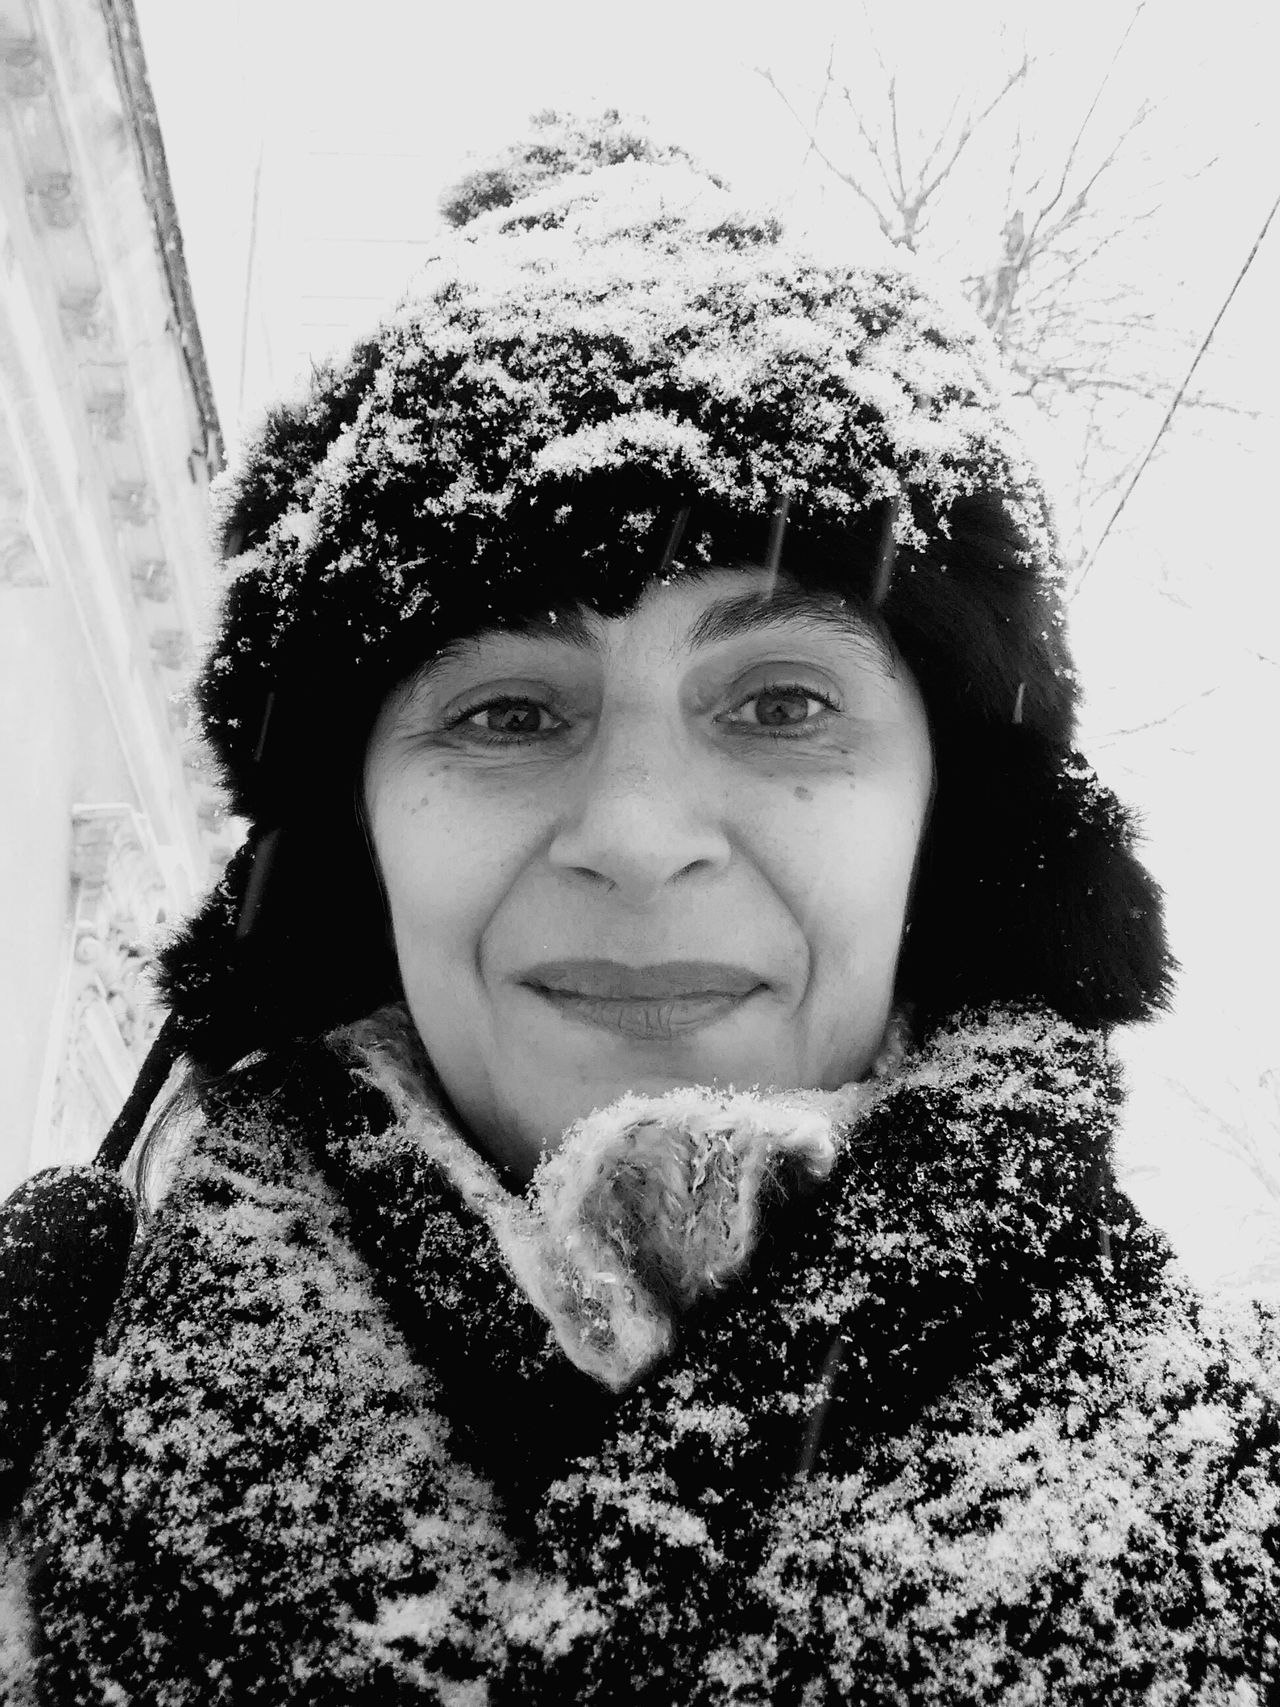 Nothing but snow ❄ 😊 time to play with the 🐶 dogs they master snow digging 😊🐾🐩 Looking At Camera Portrait Winter Cold Temperature One Person Warm Clothing Knit Hat Weather Close-up Front View Headshot Real People Human Face Outdoors People Eyeem Best Shot EyeEm Gallery Blackandwhite Thats Me  Beauty In Nature Romaniafrumoasa Sky Travel Destinations